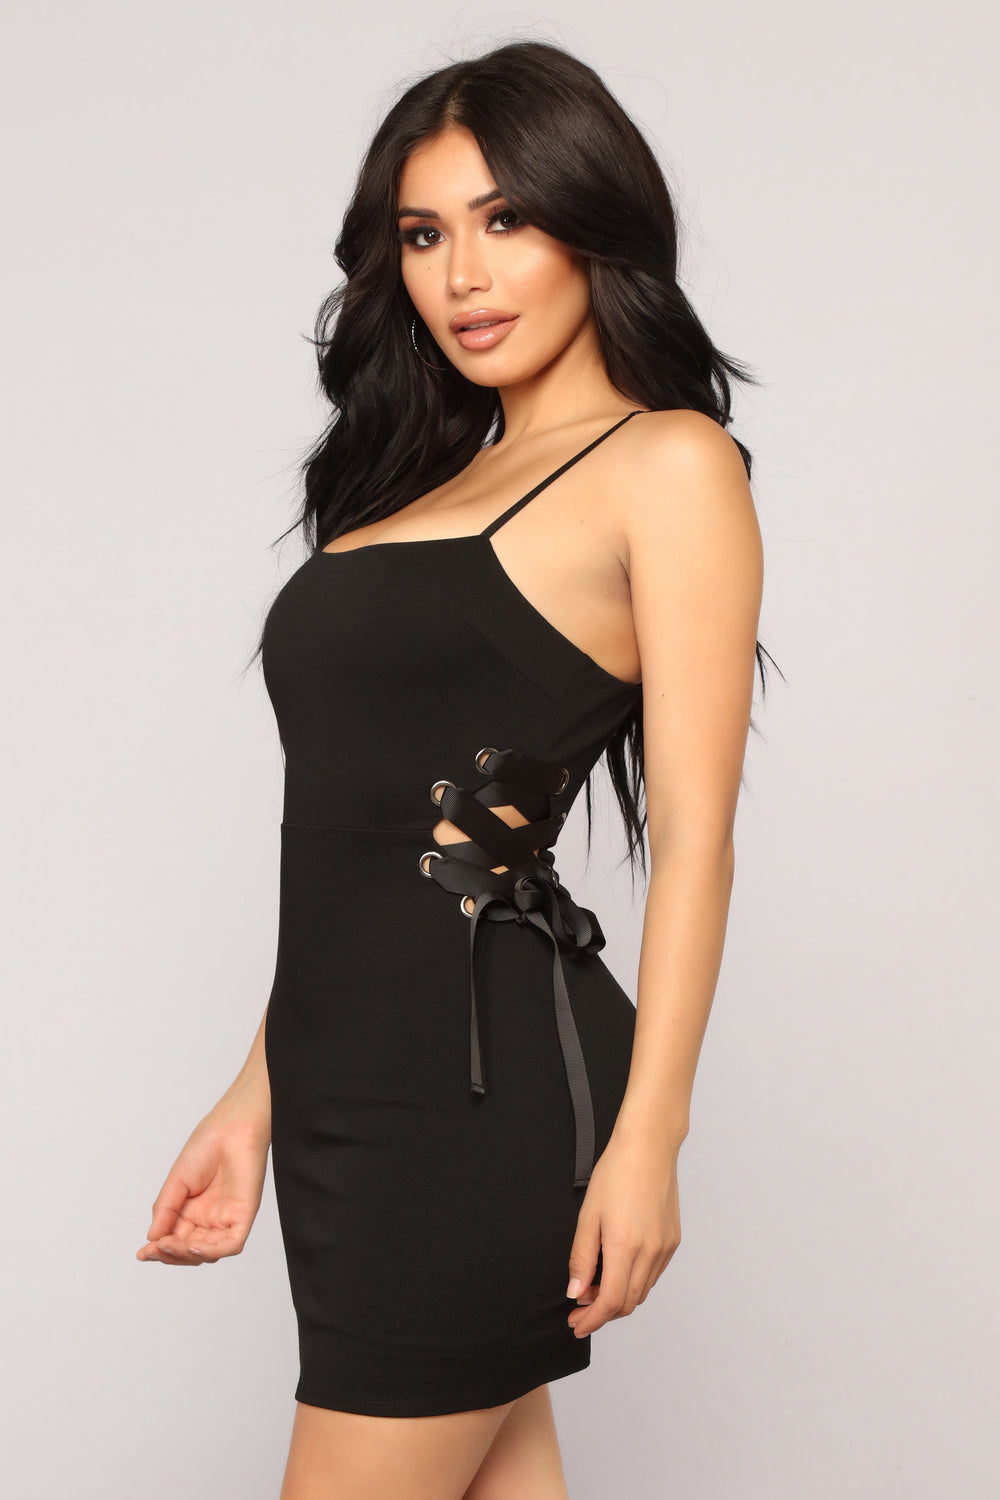 More Than Friends Lace Up Dress - Black